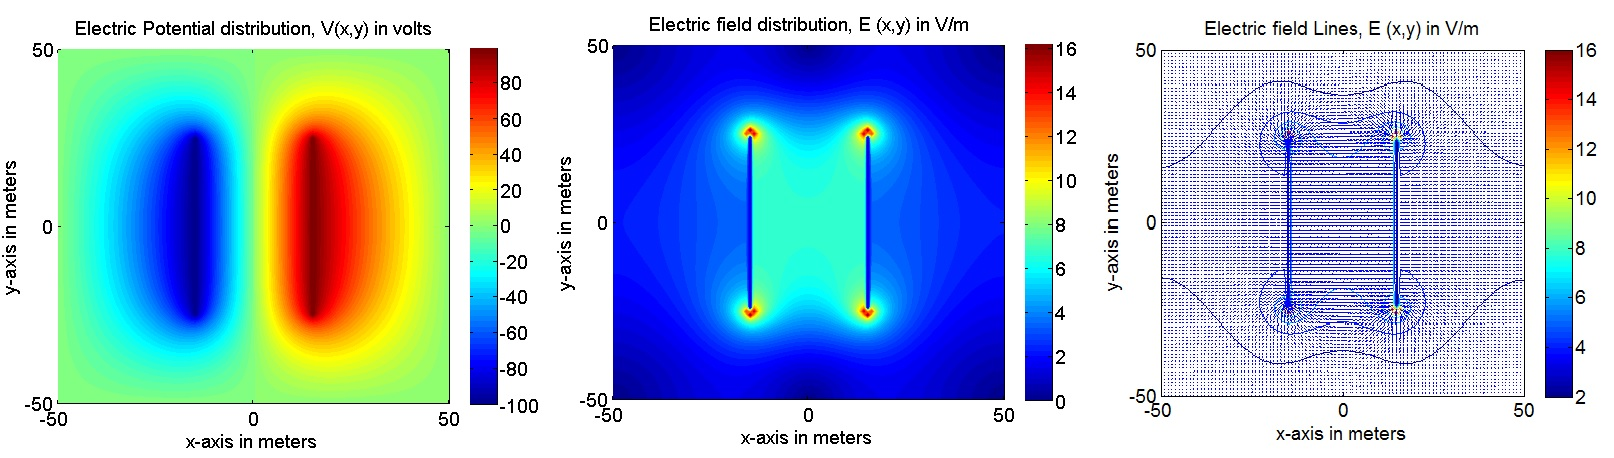 Electric Field of a Parallel Plate capacitor using 2D